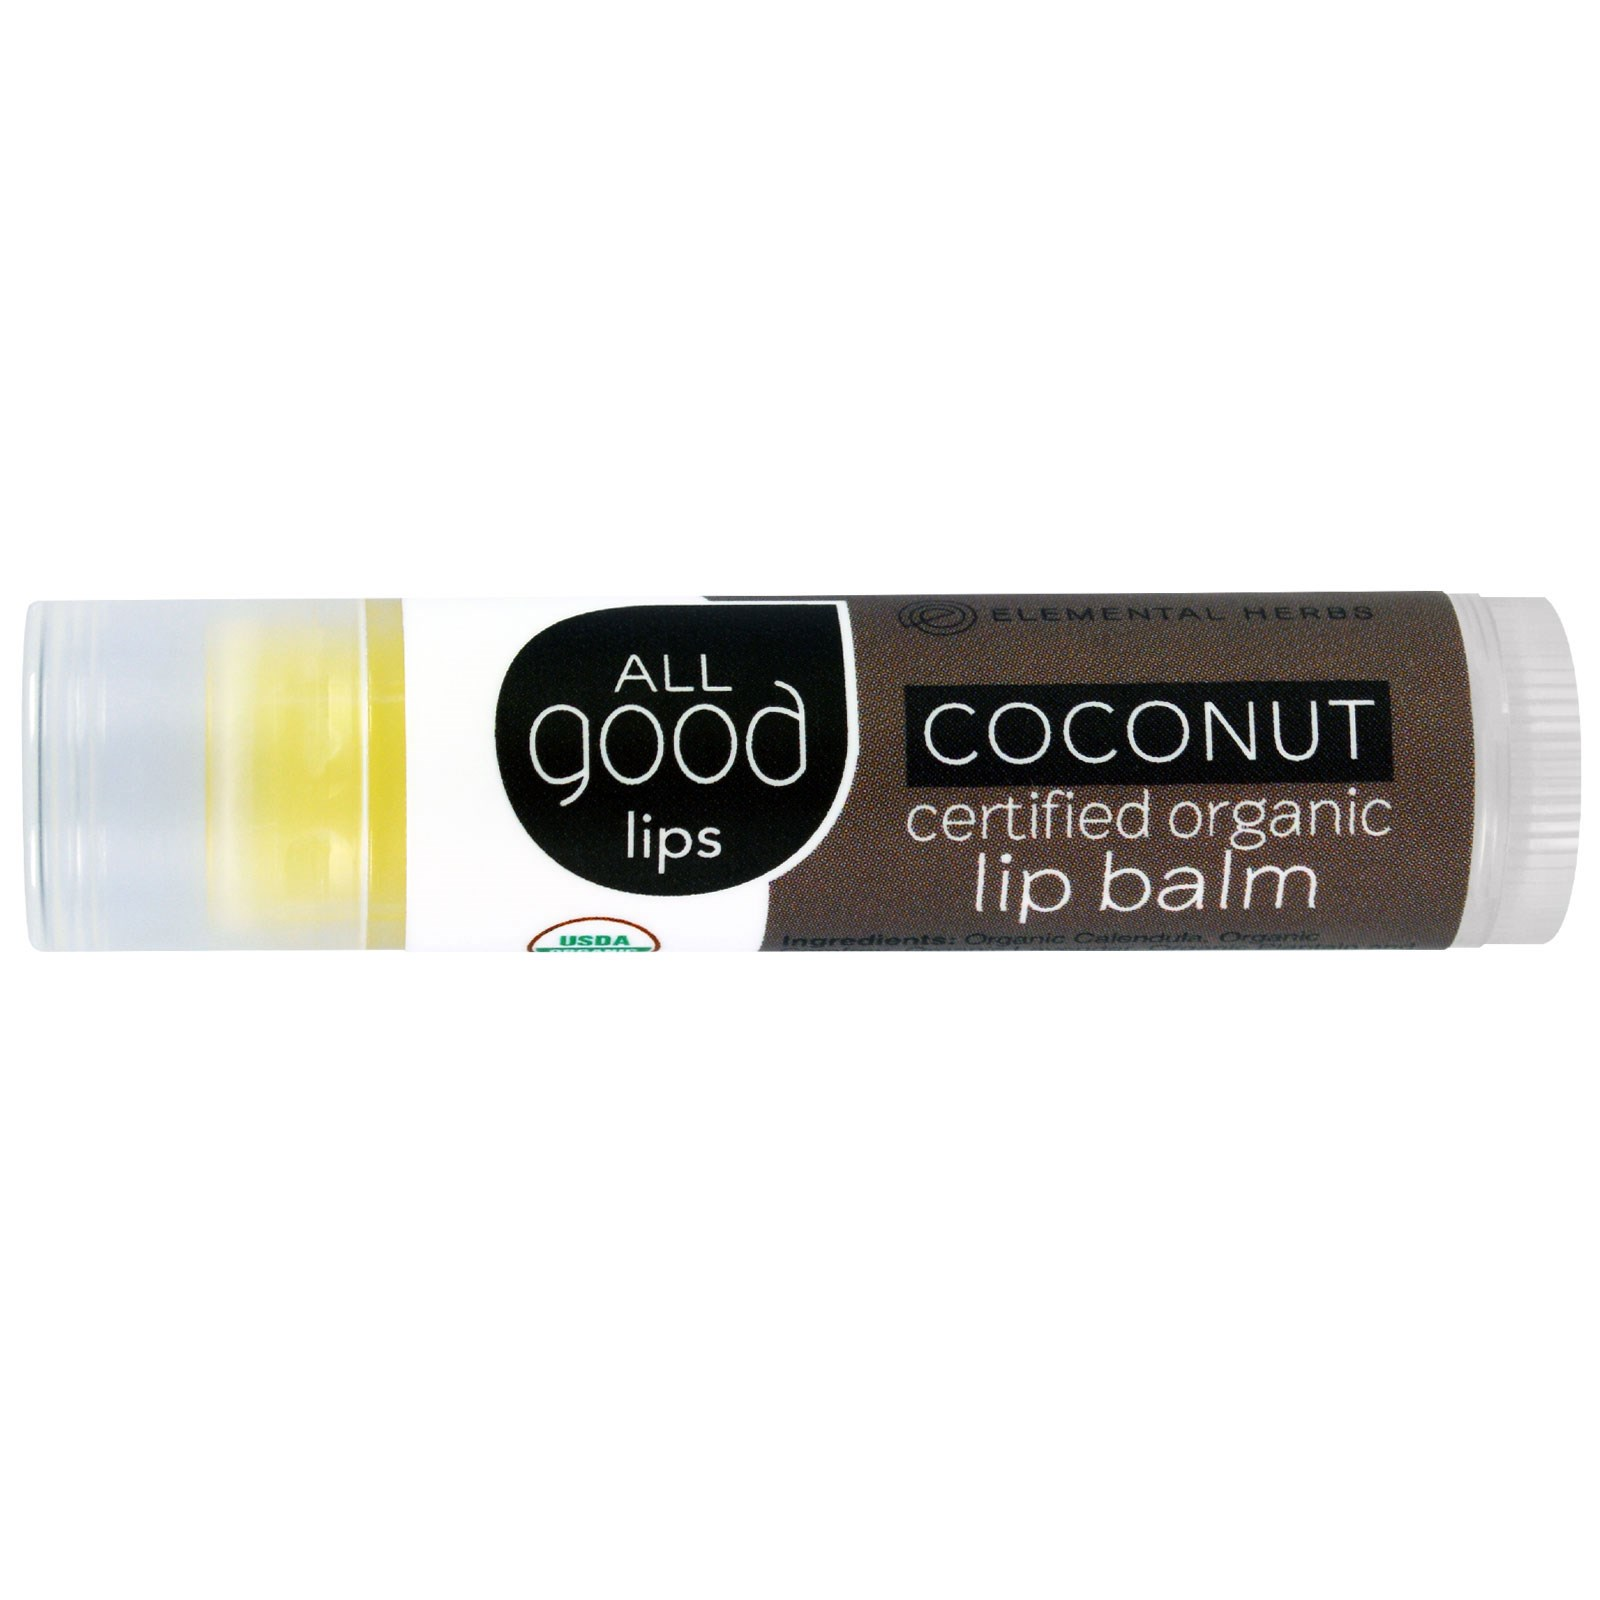 Elemental Herbs - All Good Lips SPF 20 Lip Balm Unscented - 4.25 Gram(s) (pack of 4) Dr. D Schwab Herbal Foaming Oil Free Cleanser Great for Most Skin Types - 8 Oz